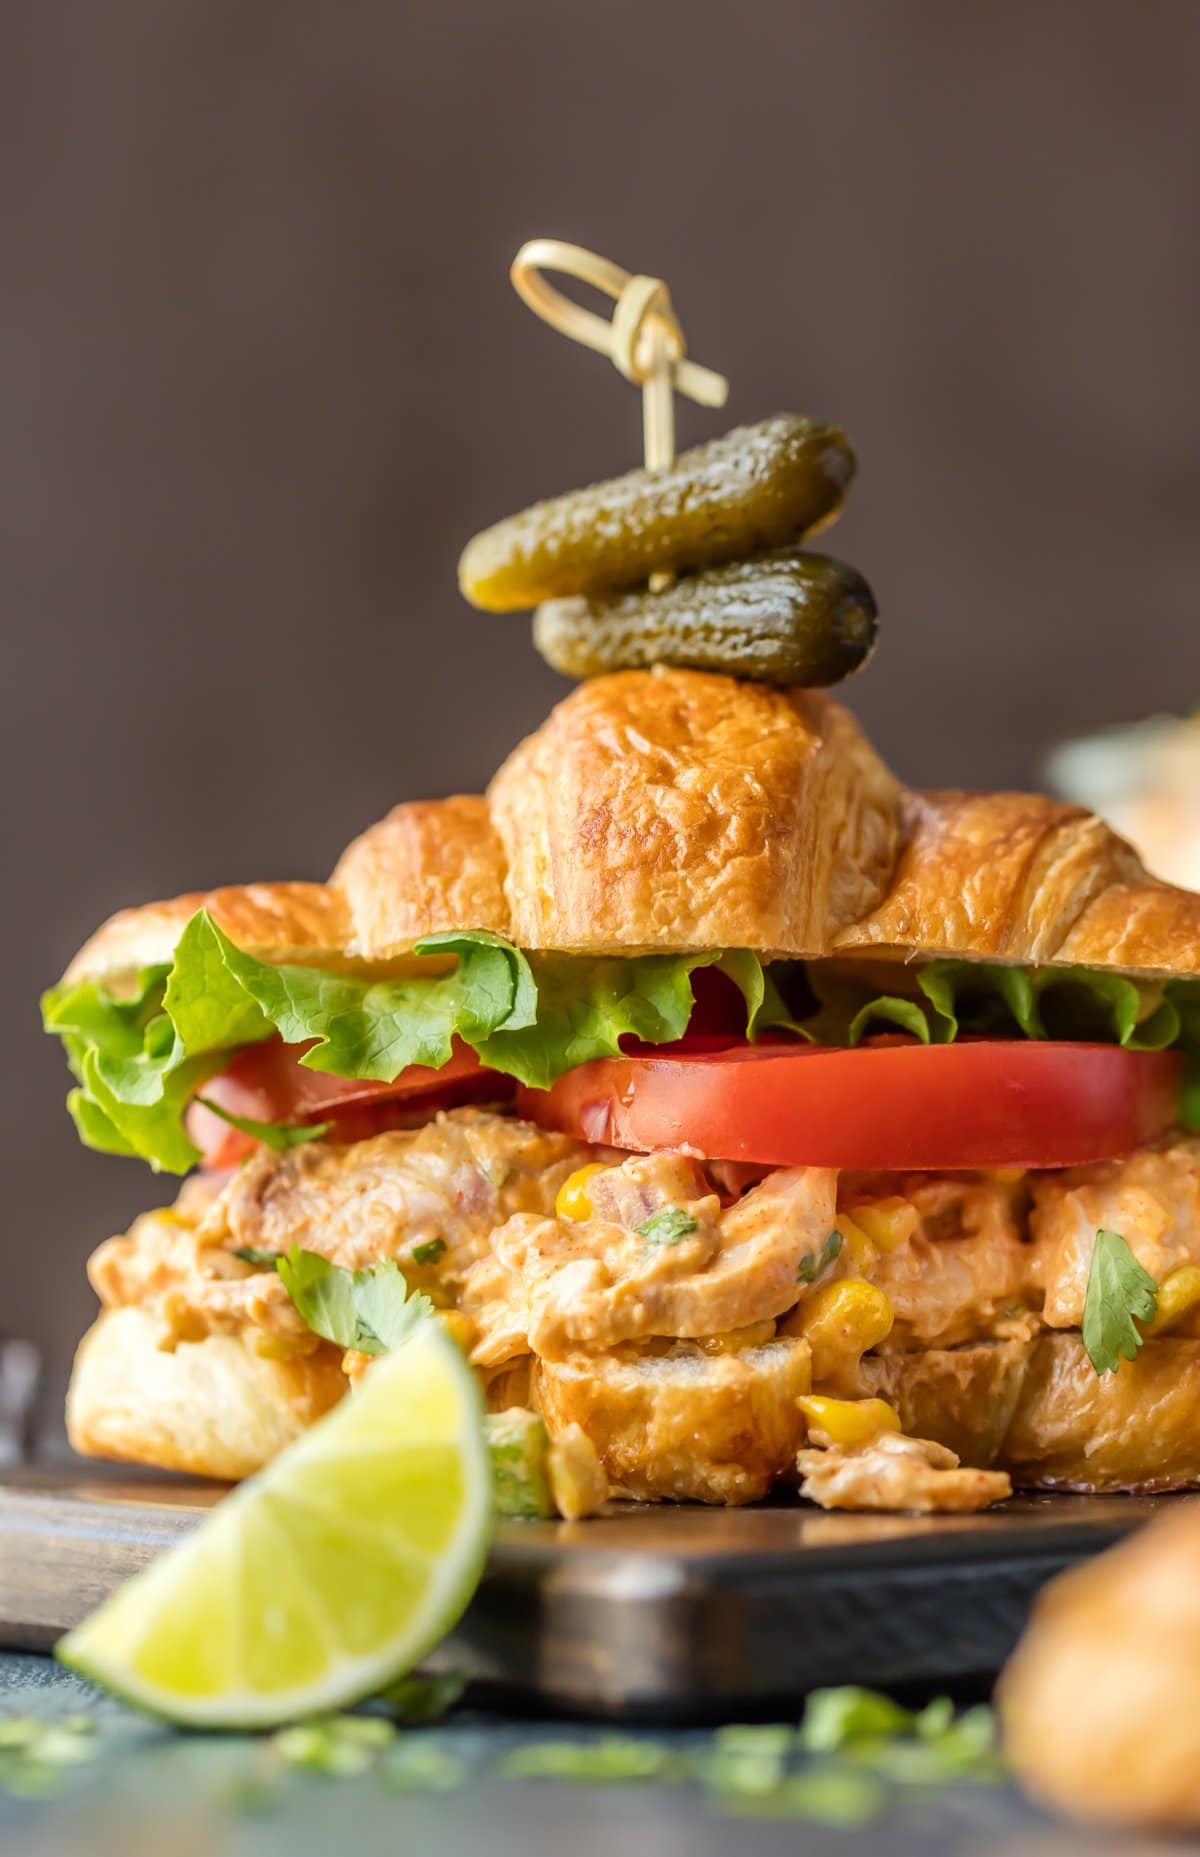 Chicken Salad Sandwich on a croissant with lettuce and tomato